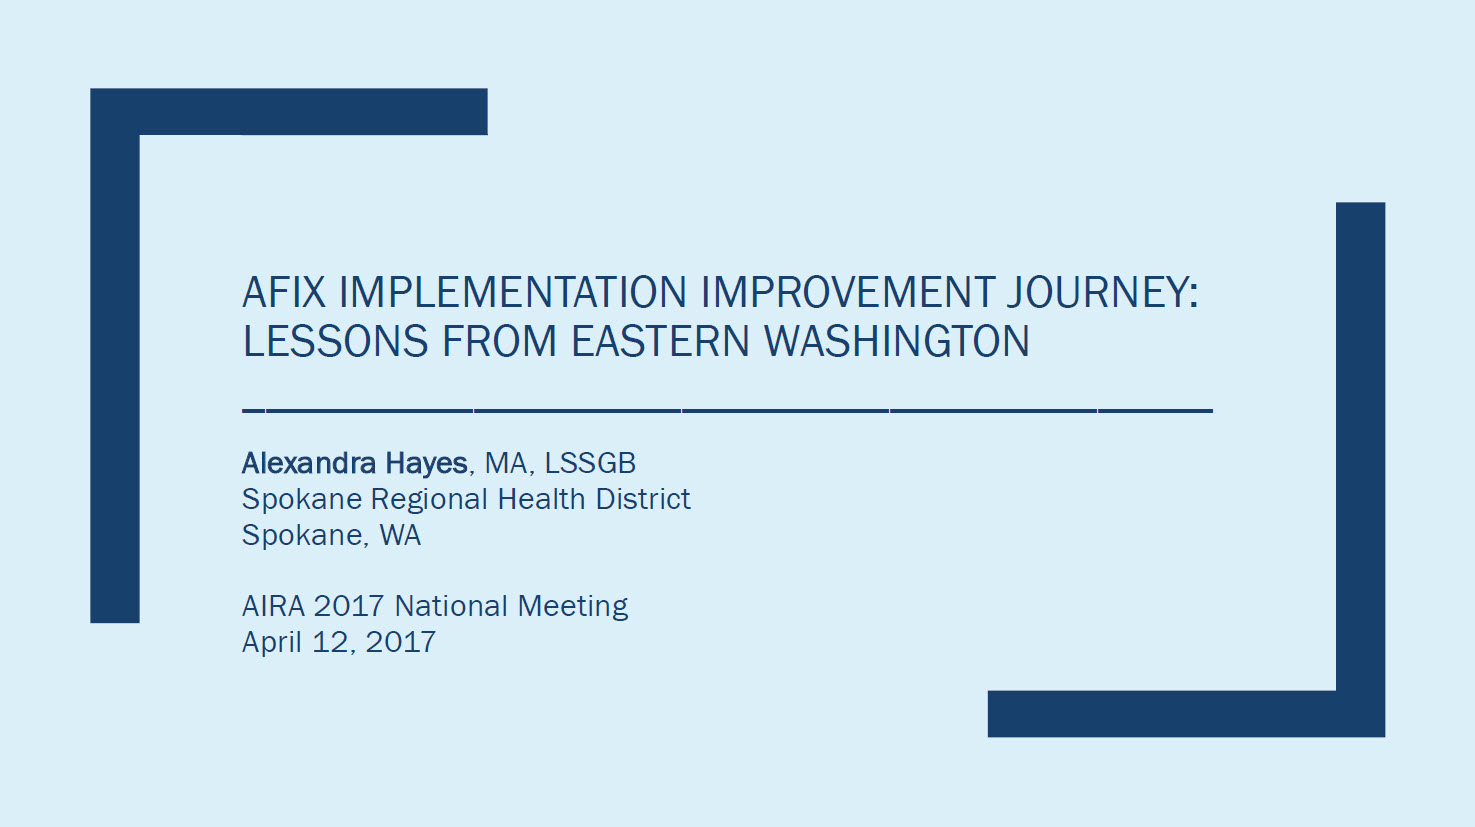 AFIX Implementation Improvement Journey: Lessons from Eastern Washington